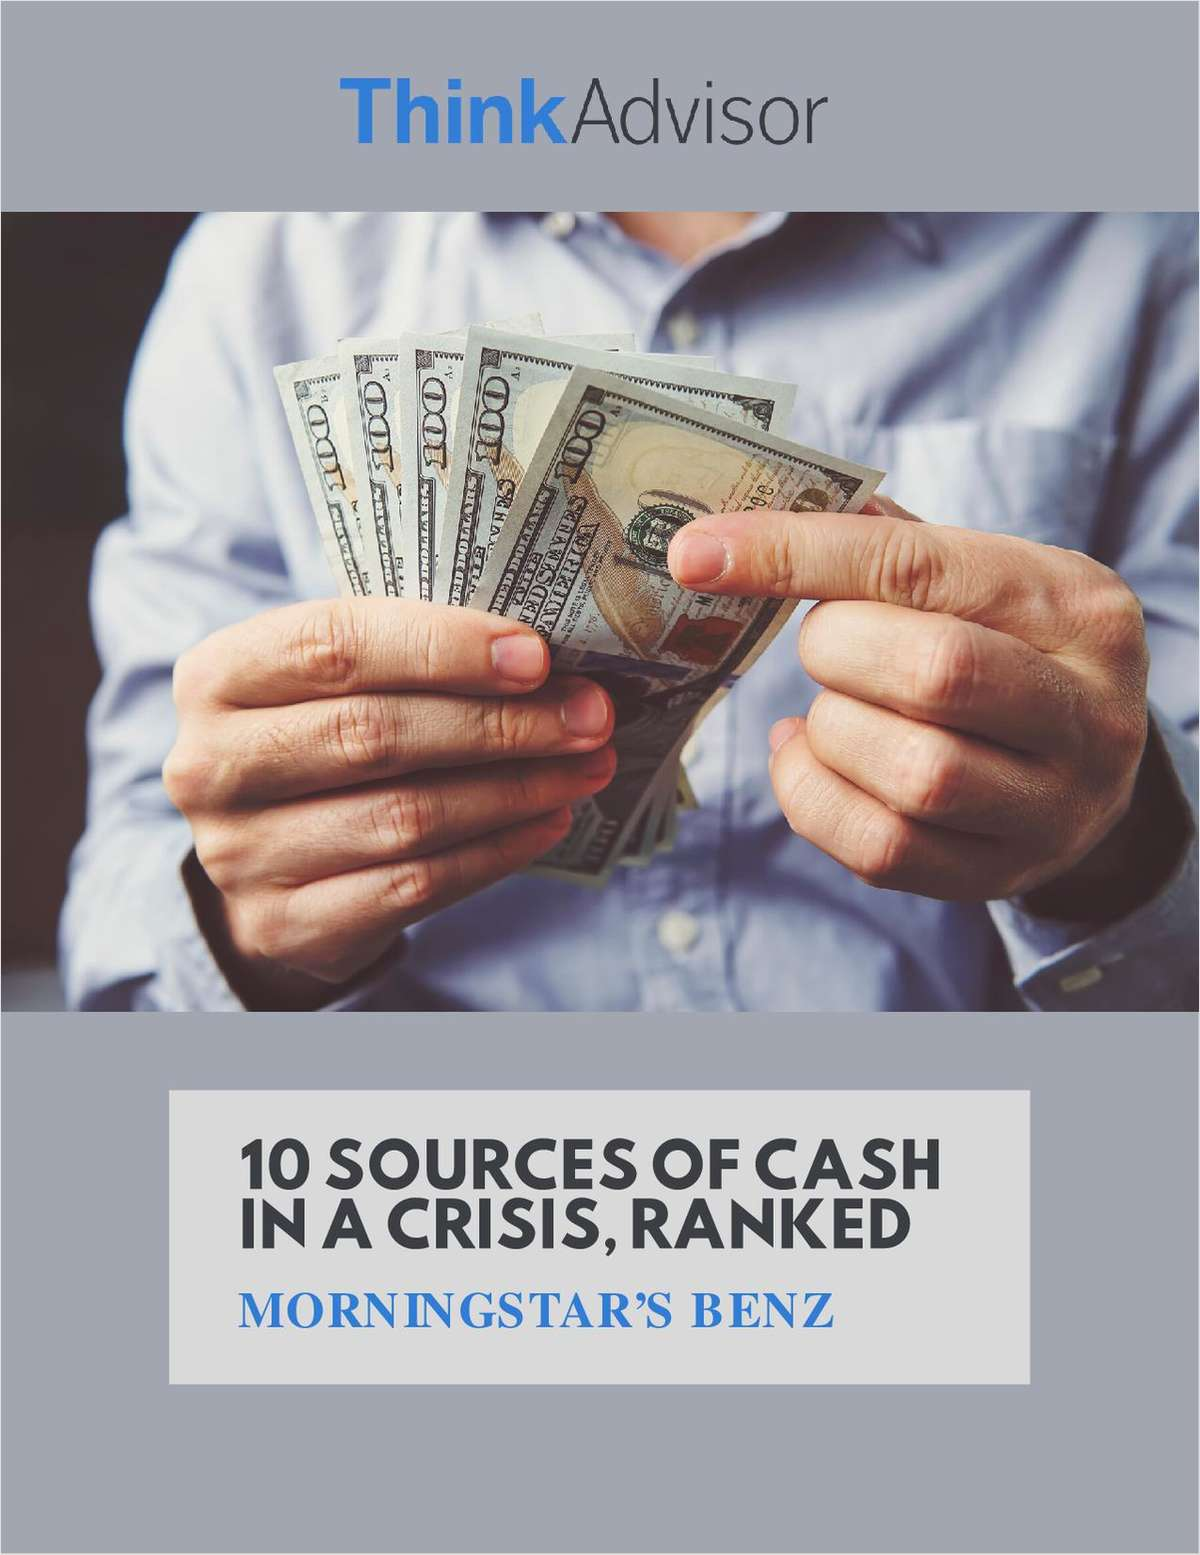 10 Sources of Cash in a Crisis, Ranked: Morningstar's Benz